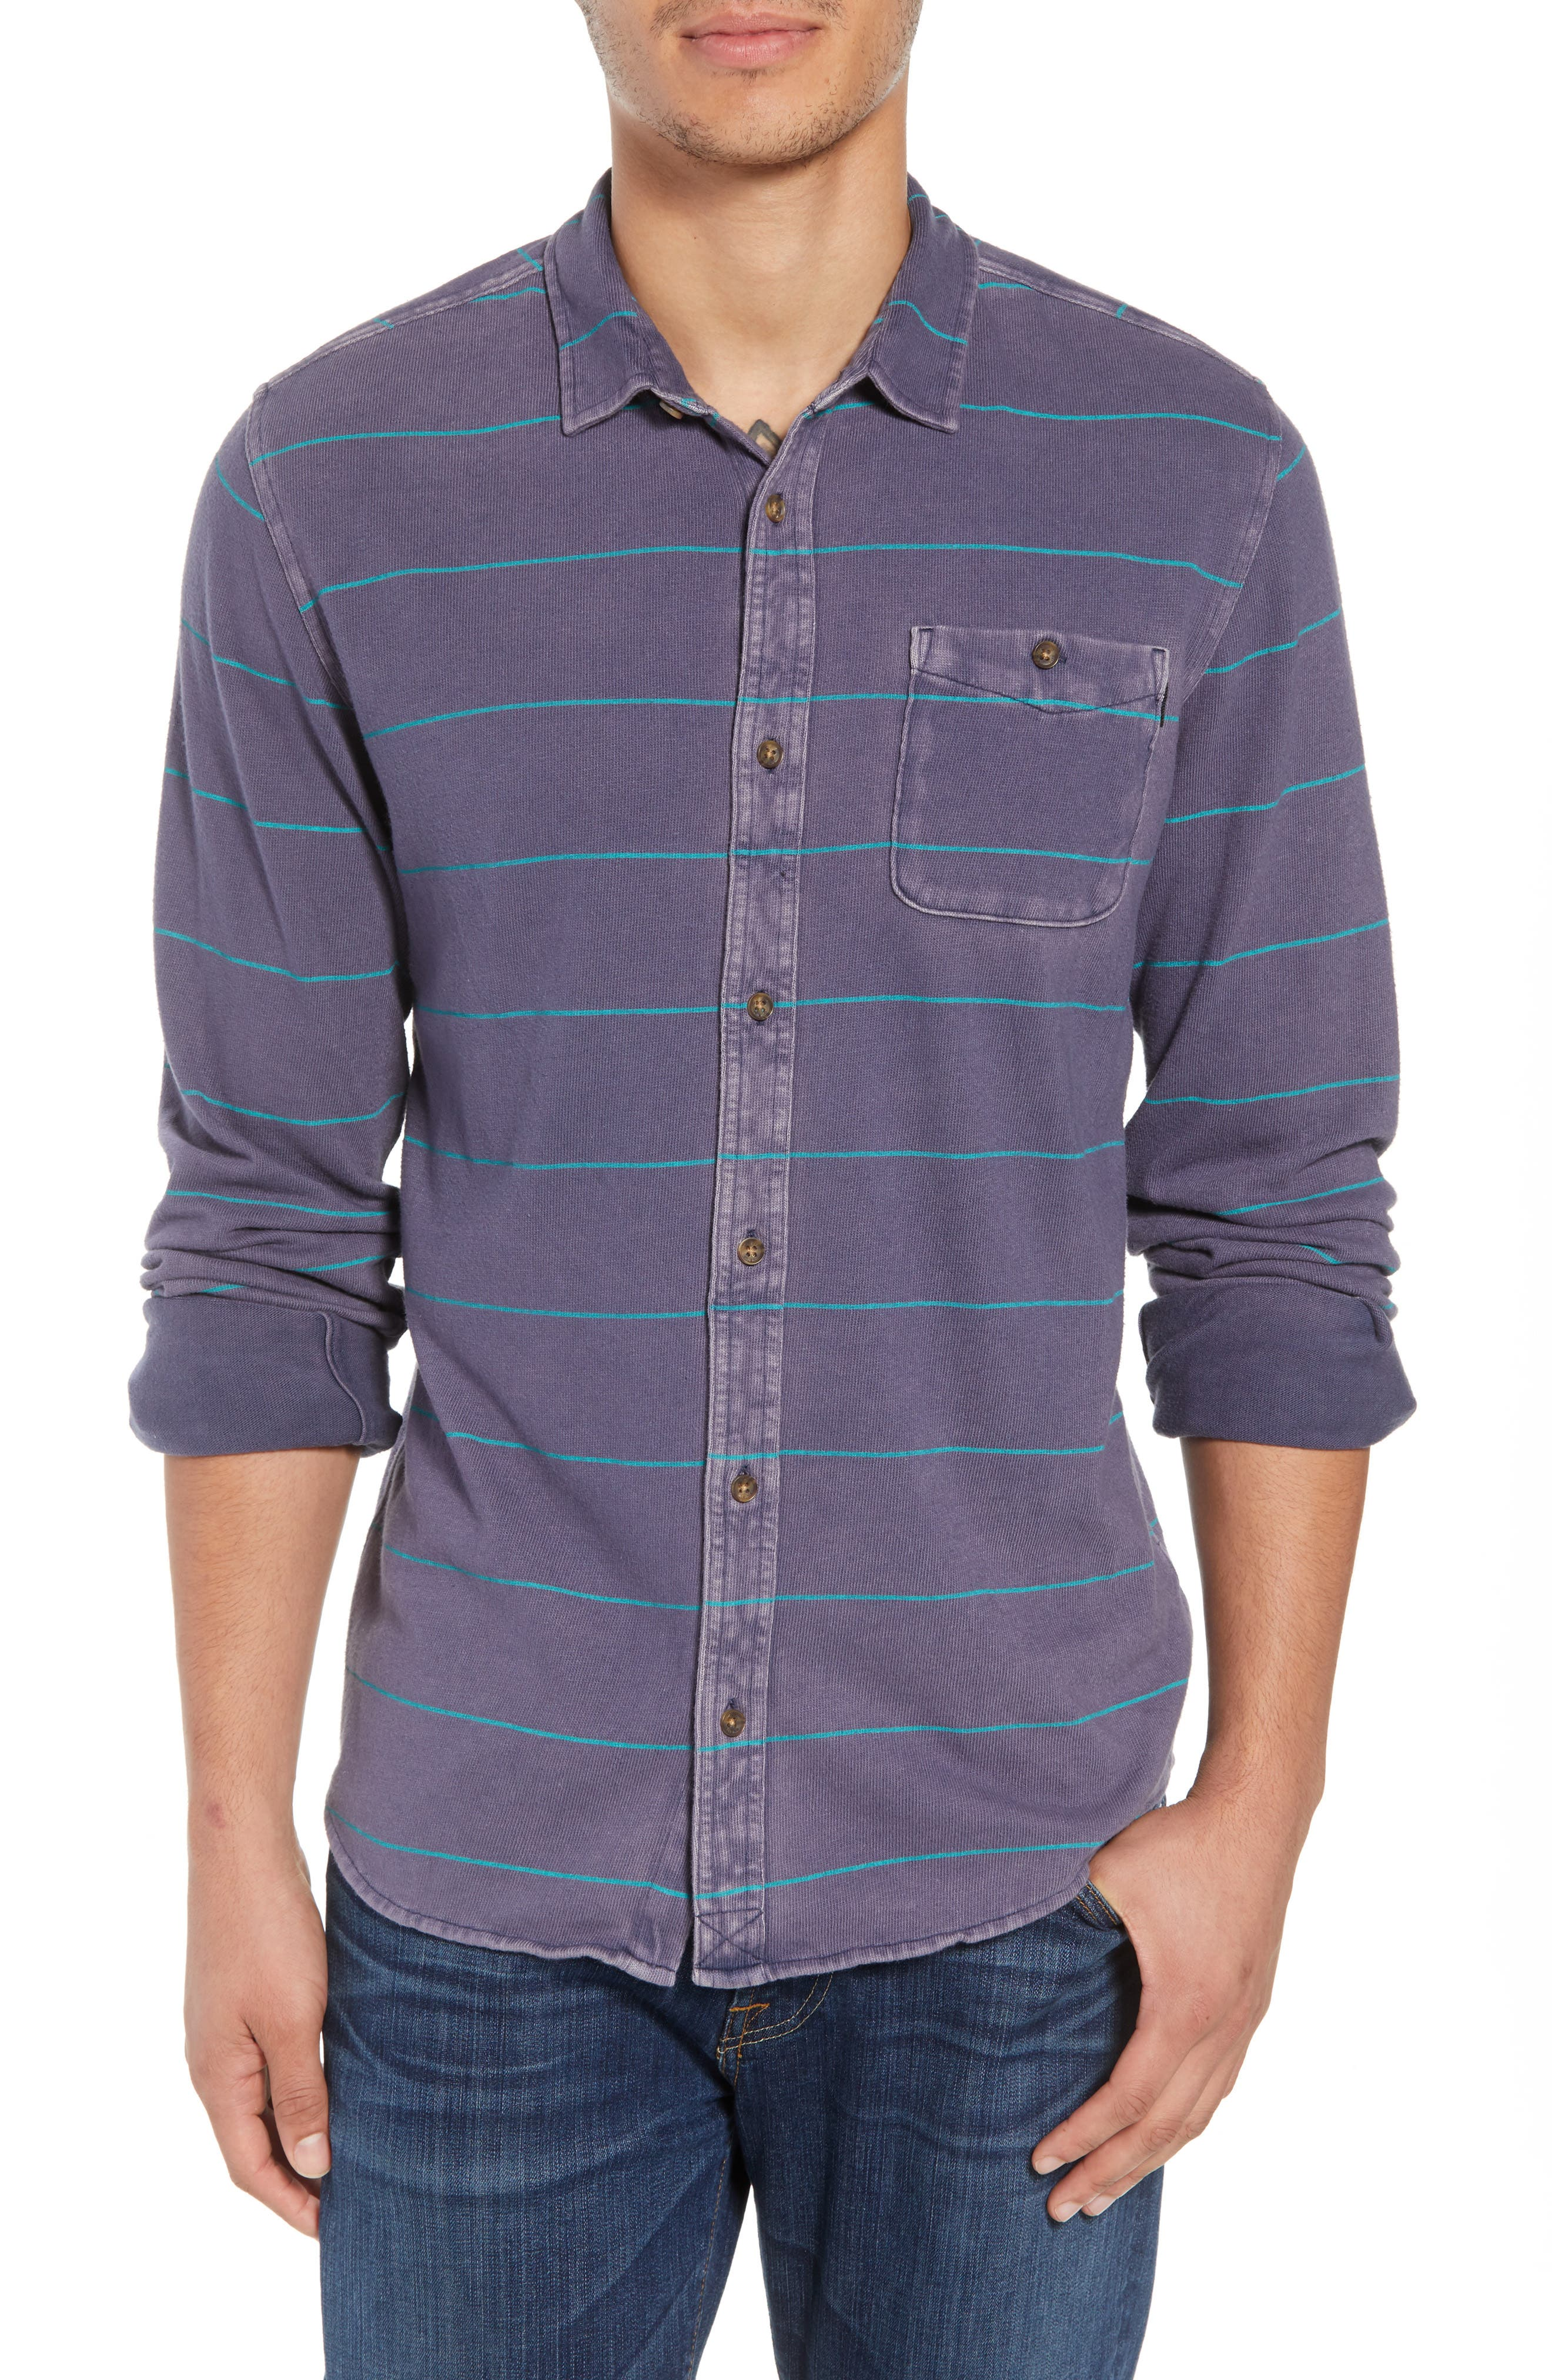 Cowell Knit Button-Up Shirt,                             Main thumbnail 1, color,                             NAVY